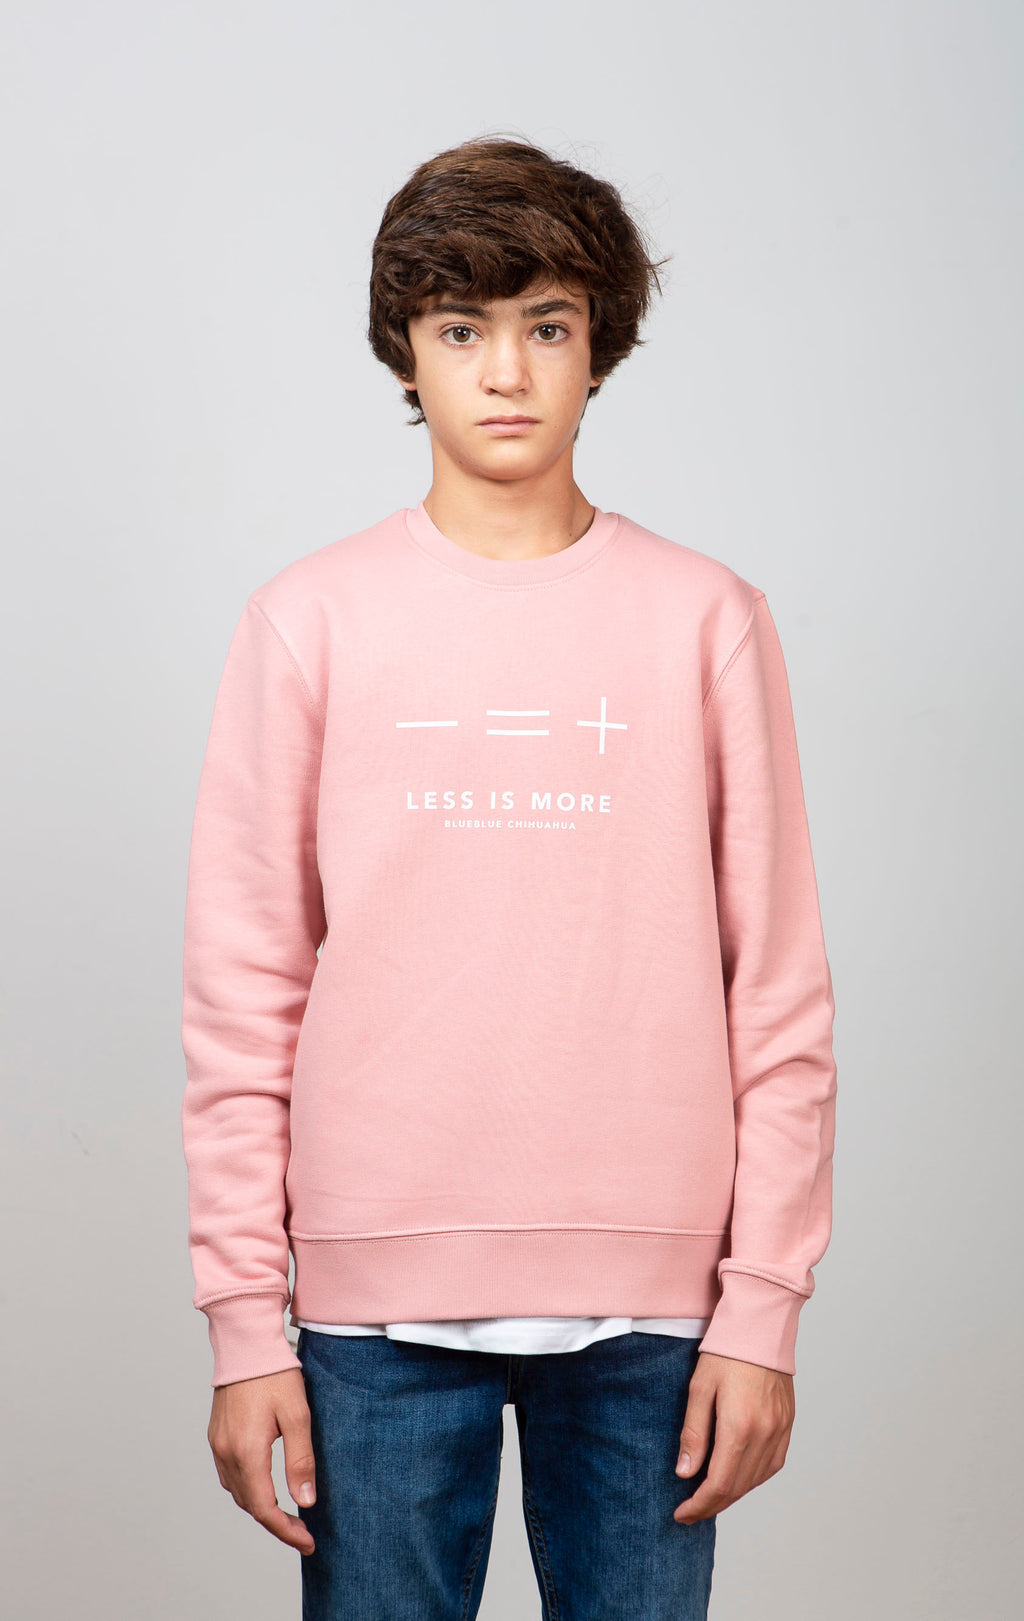 Sudadera Pink Less is More